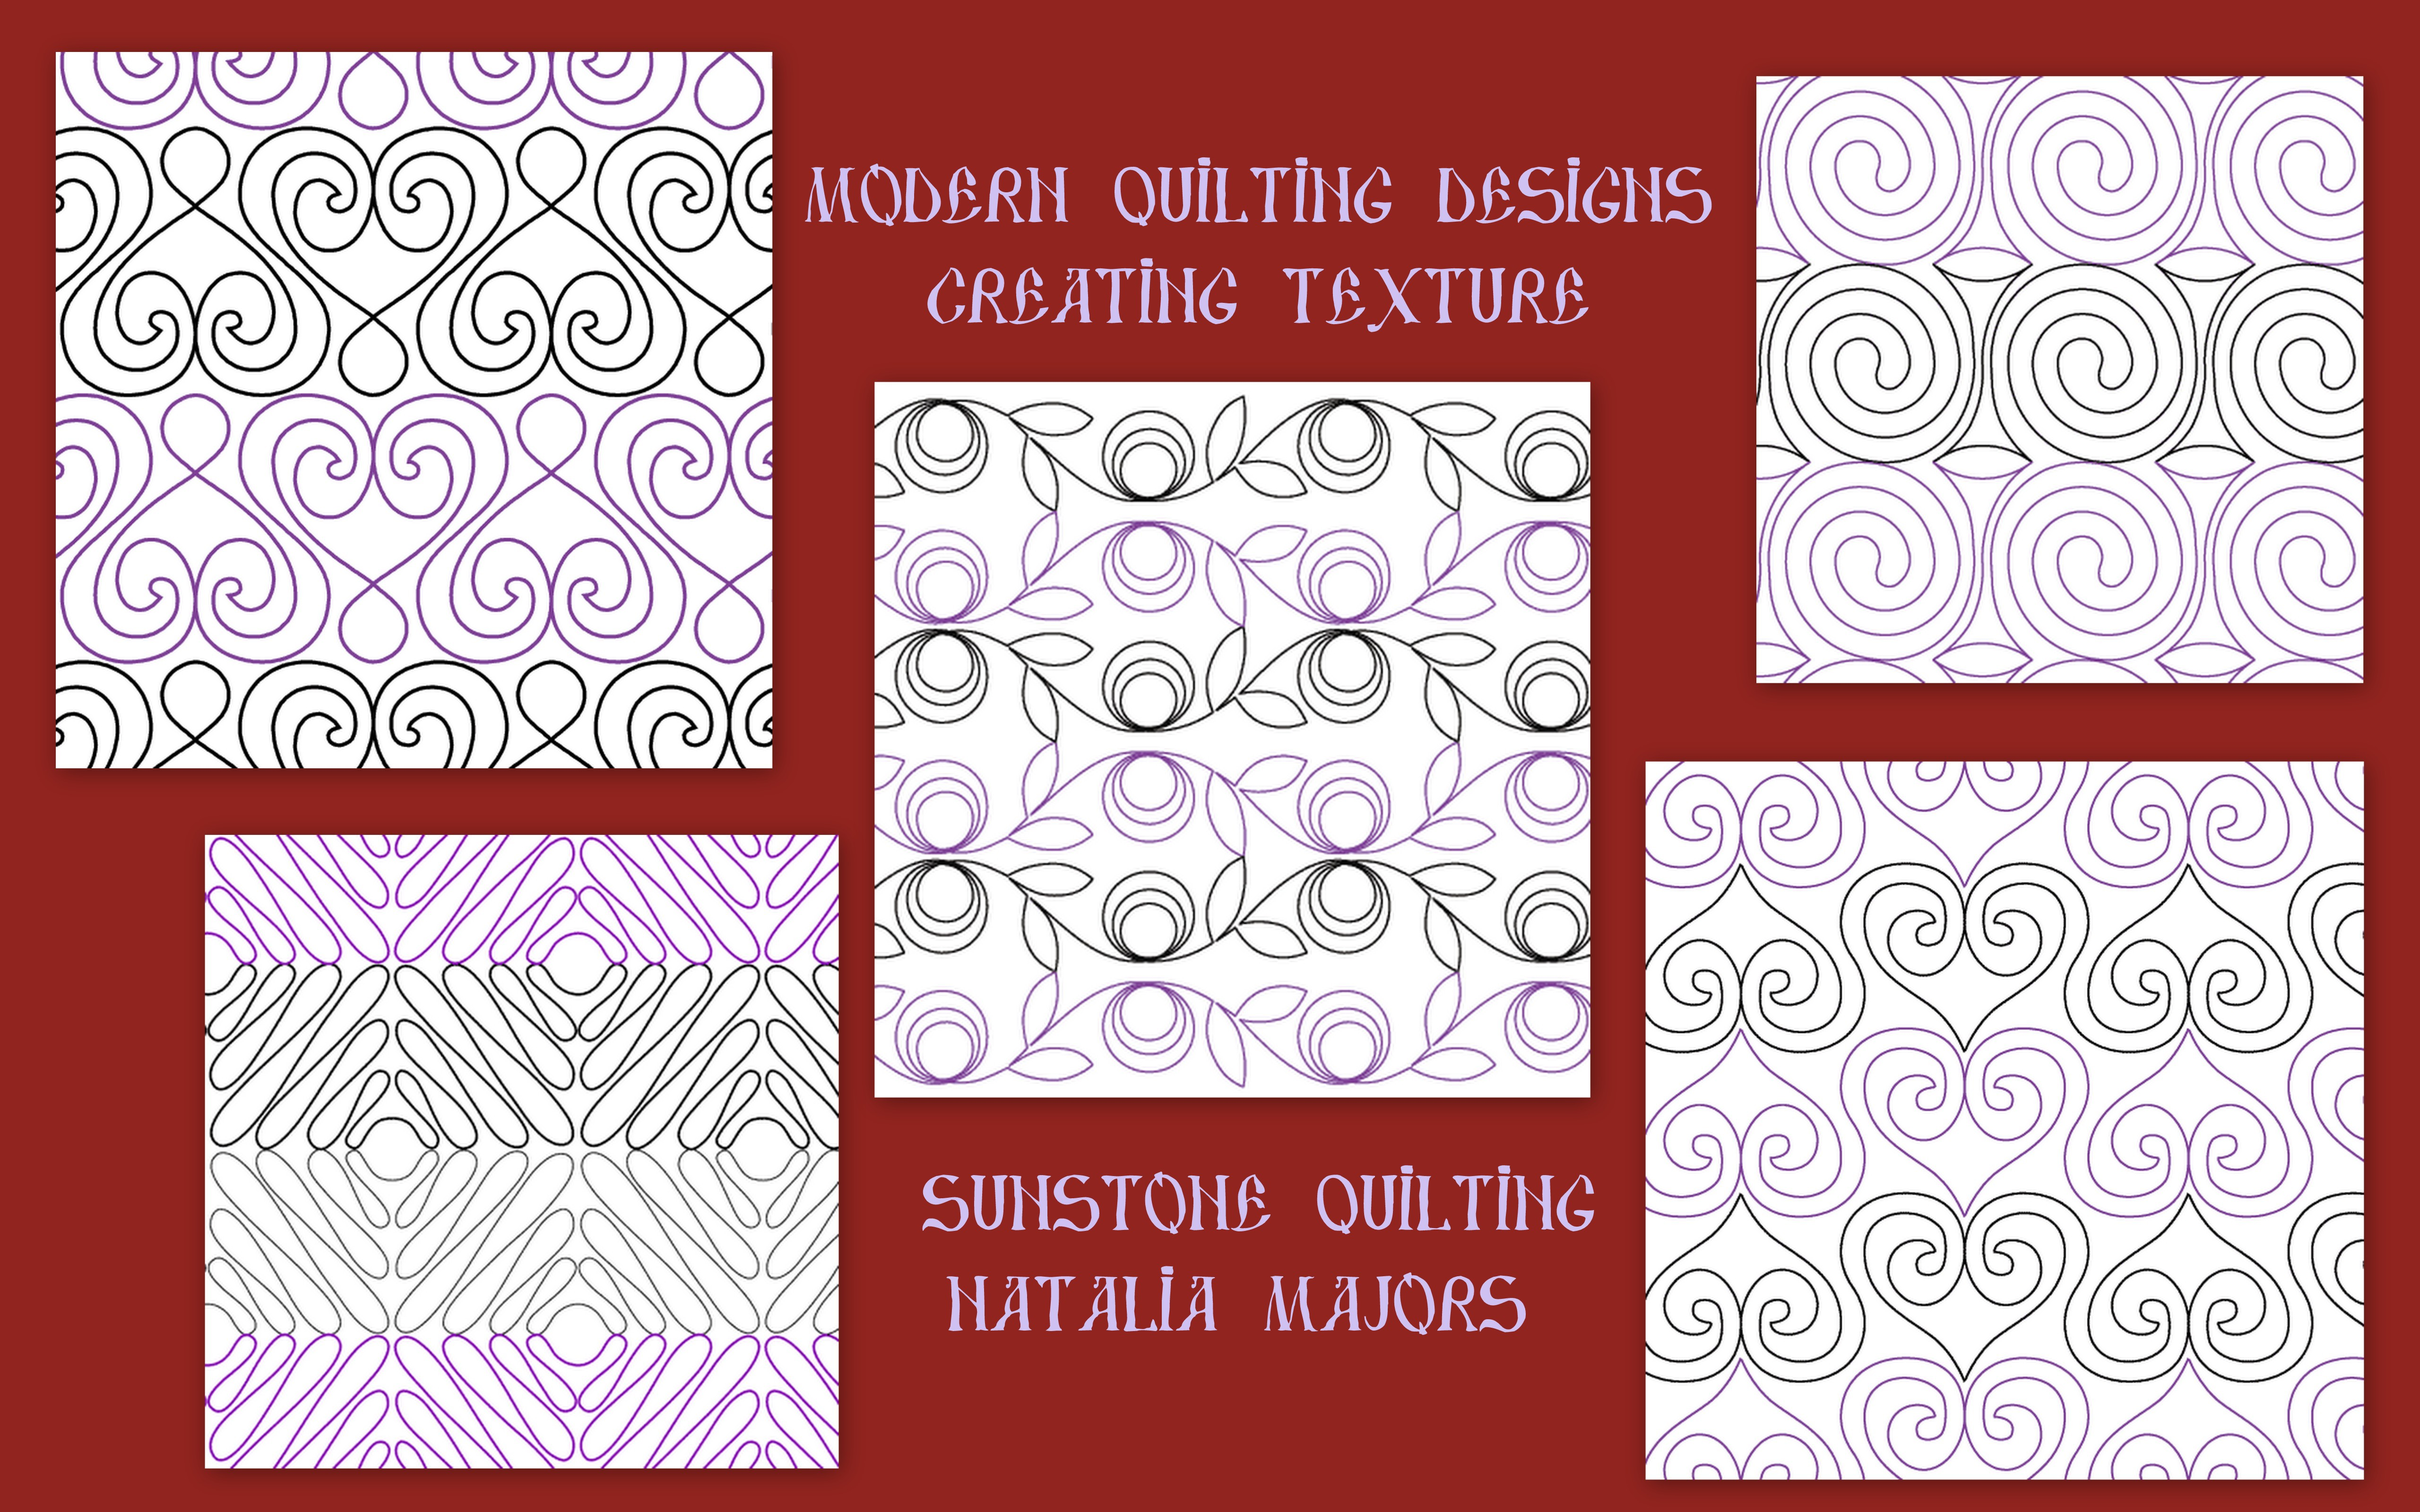 New 2013 Quilting designs for Modern quilts Sunstone Quilting